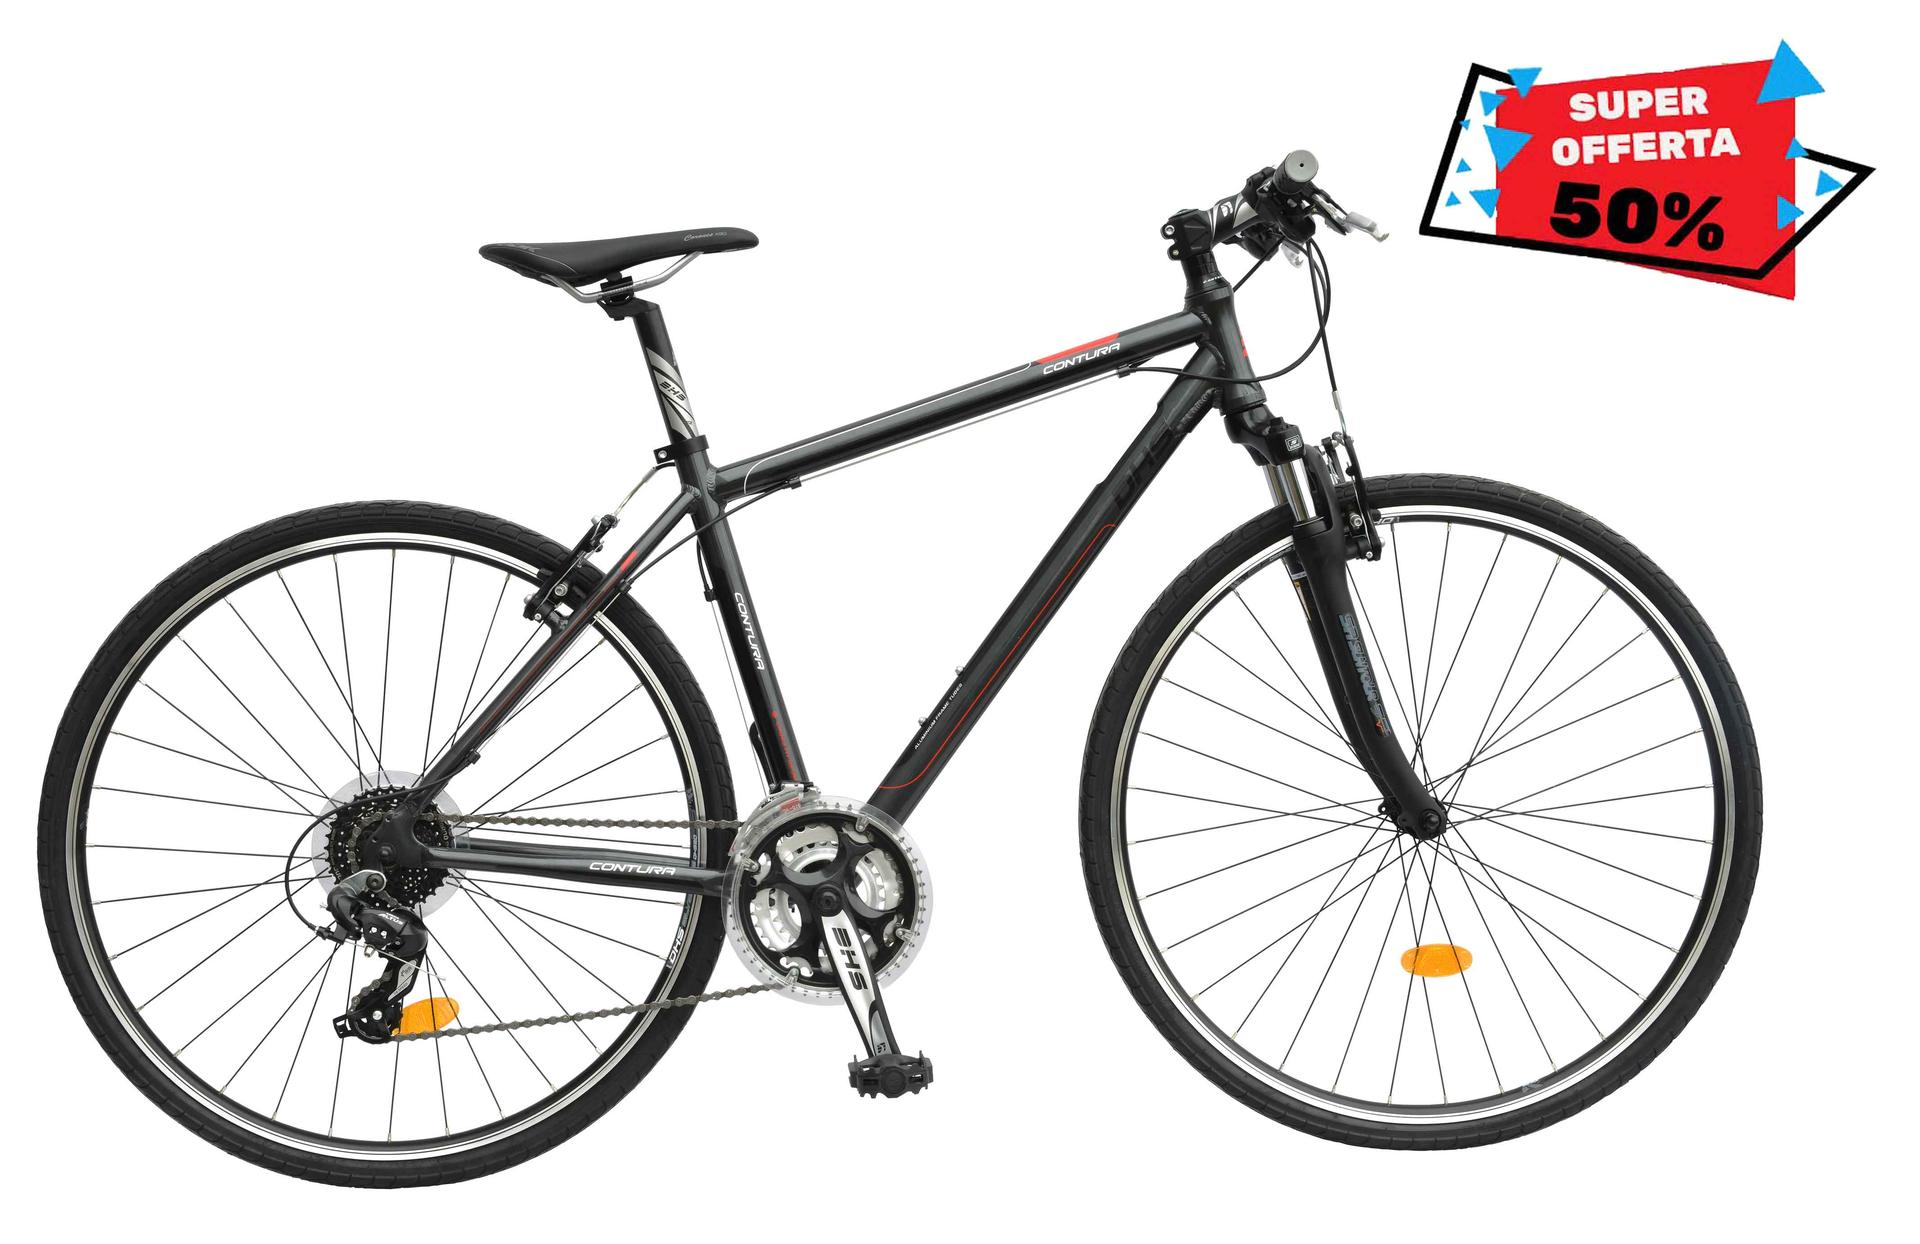 Bicicletta uomo da cross contura DHS 2865 Grey-Green 530mm